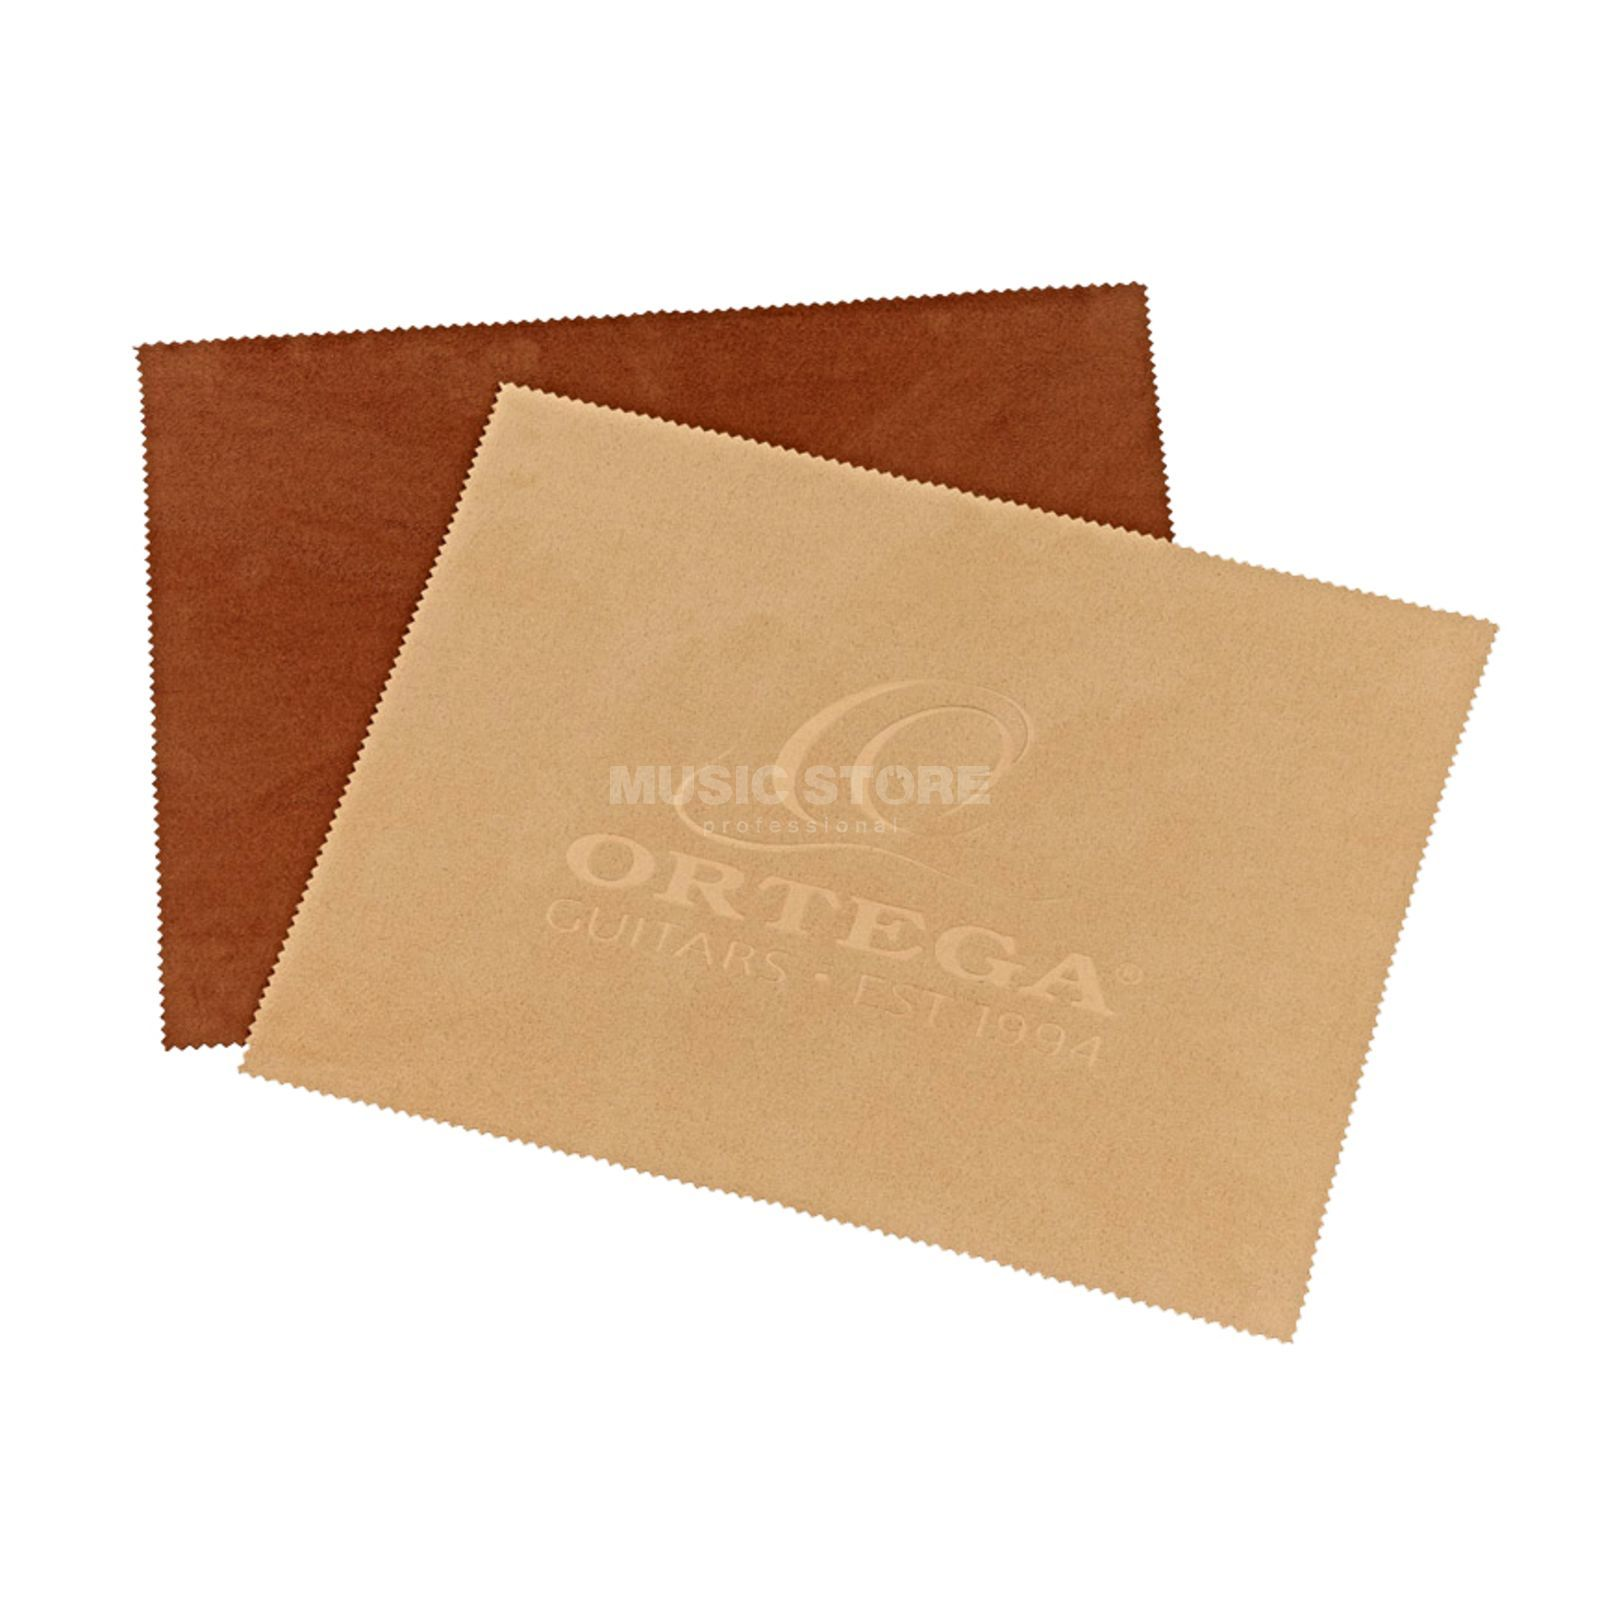 Ortega OPC-LY/LB Polish Cloth Light Yellow/Light Brown Produktbild